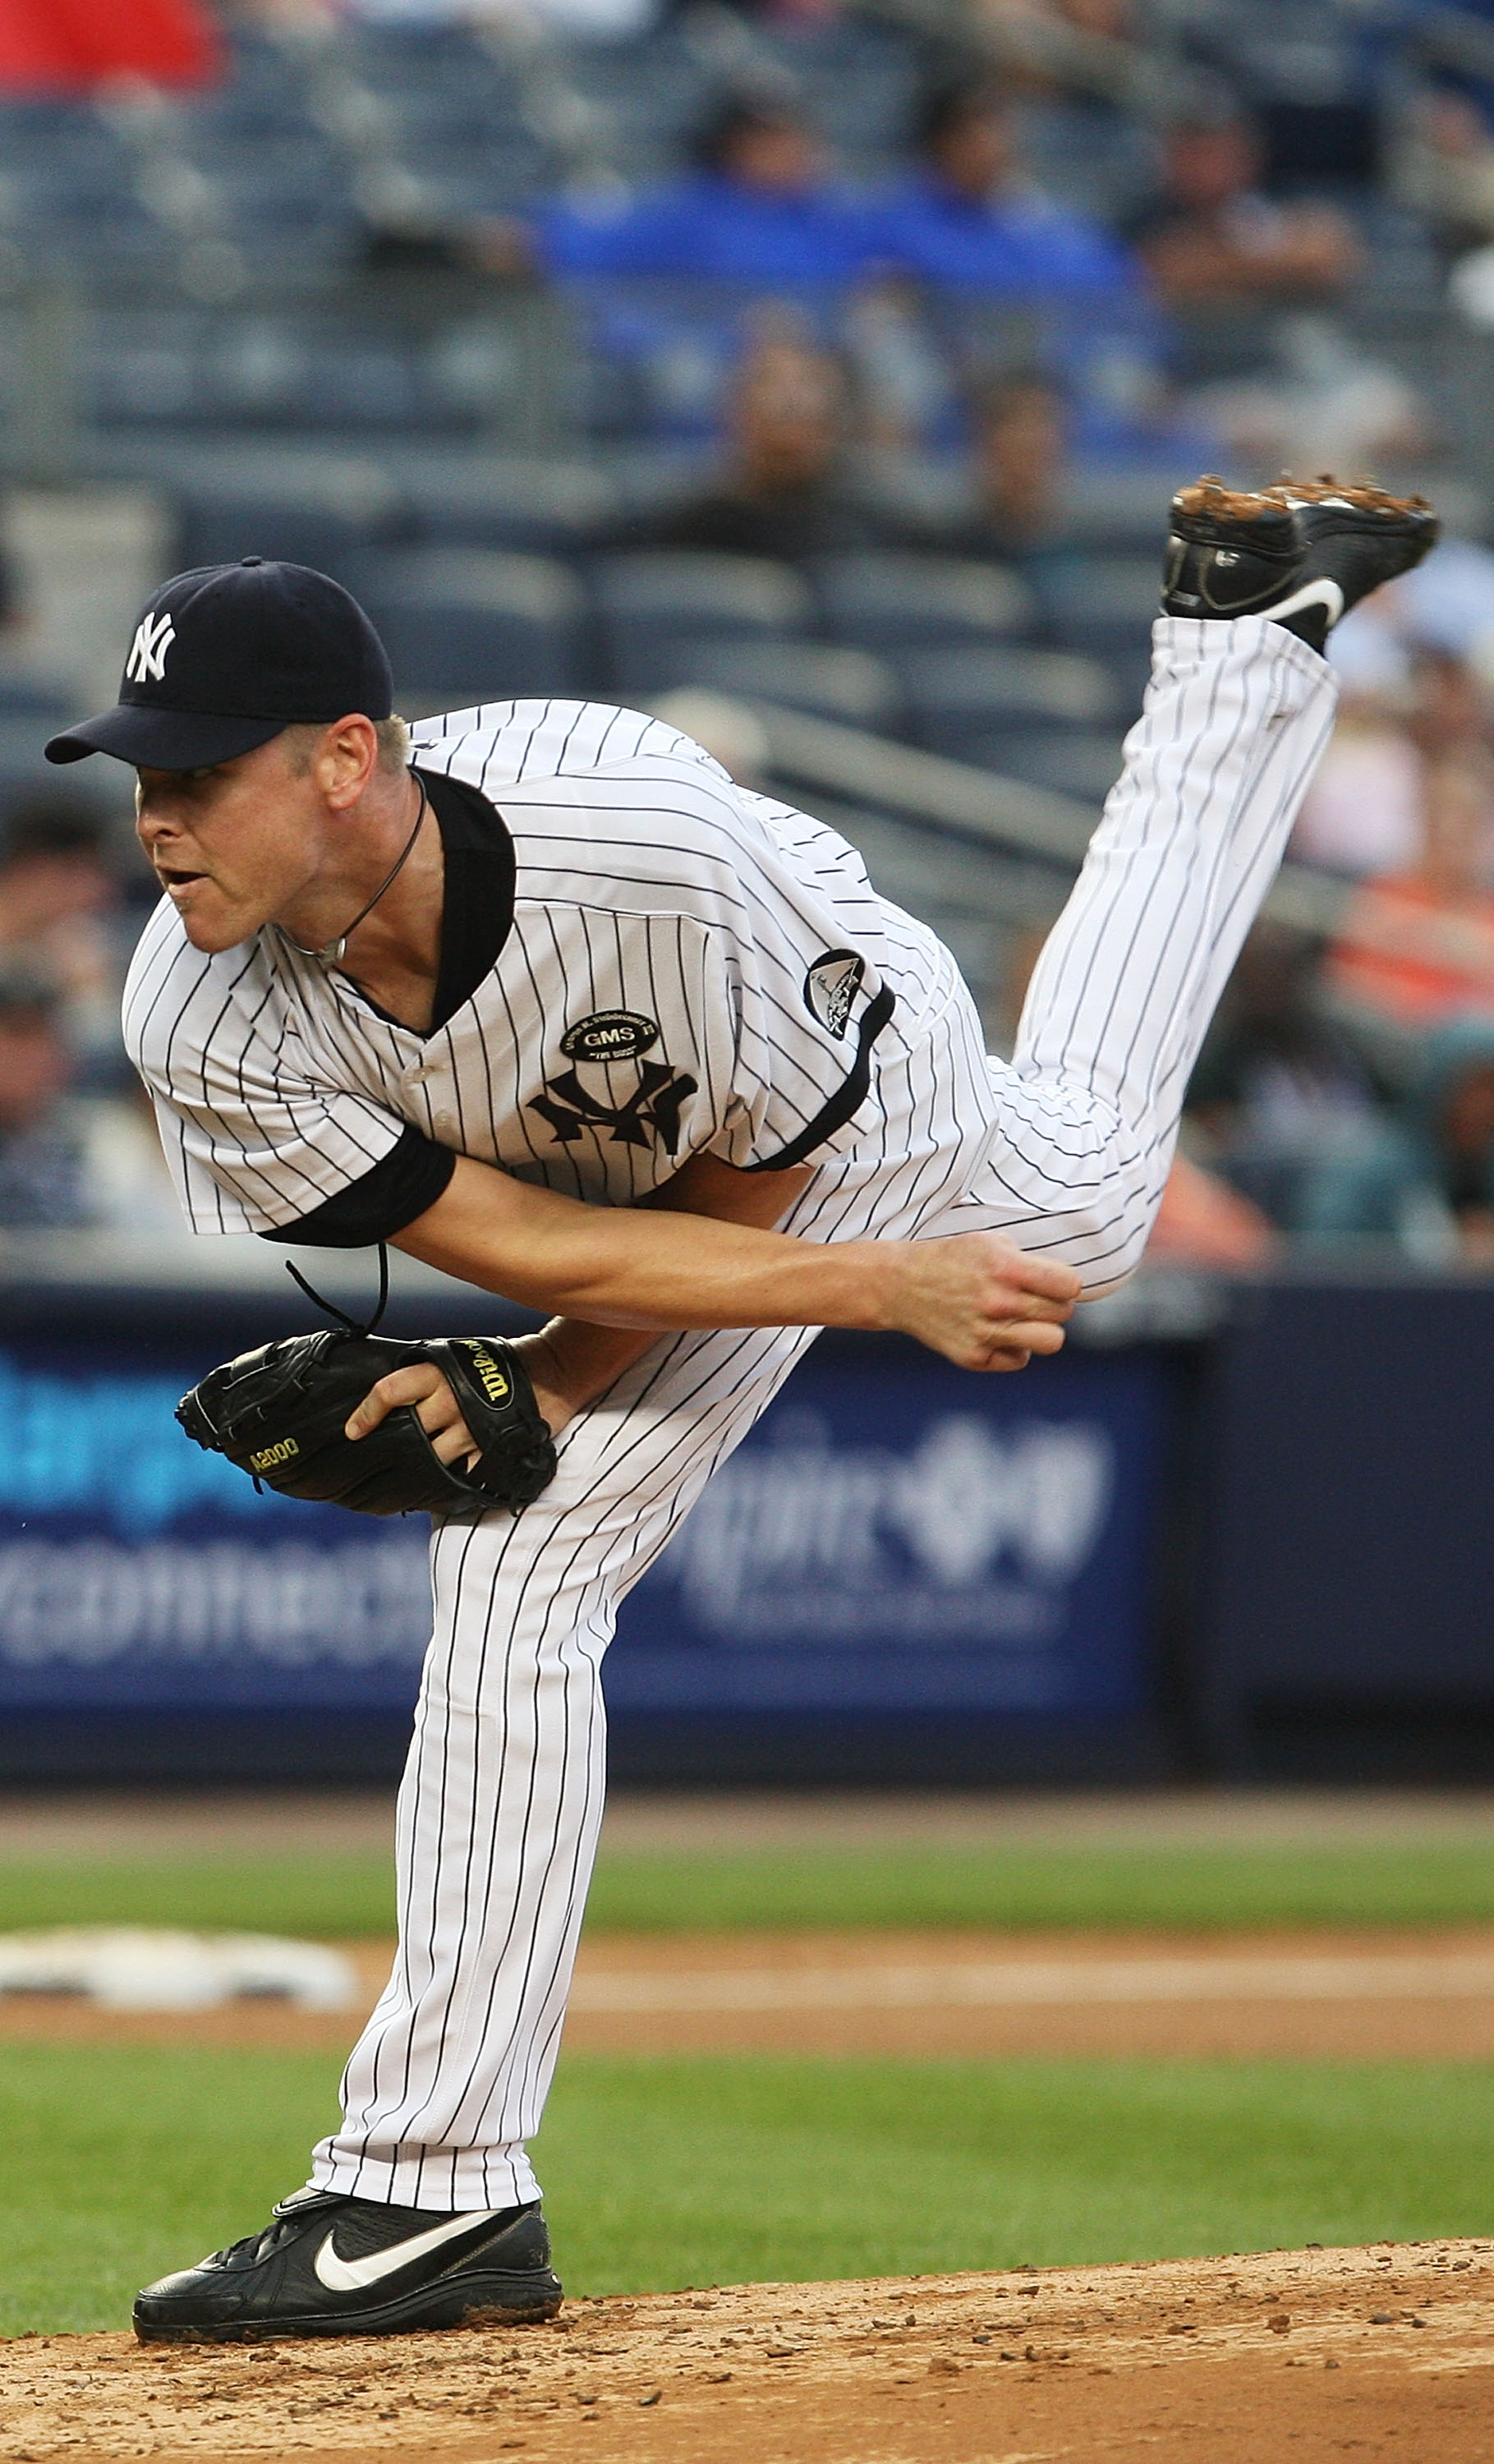 NEW YORK - AUGUST 22:  Kerry Wood #39 of the New York Yankees pitches against the Seattle Mariners on August 22, 2010 at Yankee Stadium in the Bronx borough of New York City.  (Photo by Andrew Burton/Getty Images)